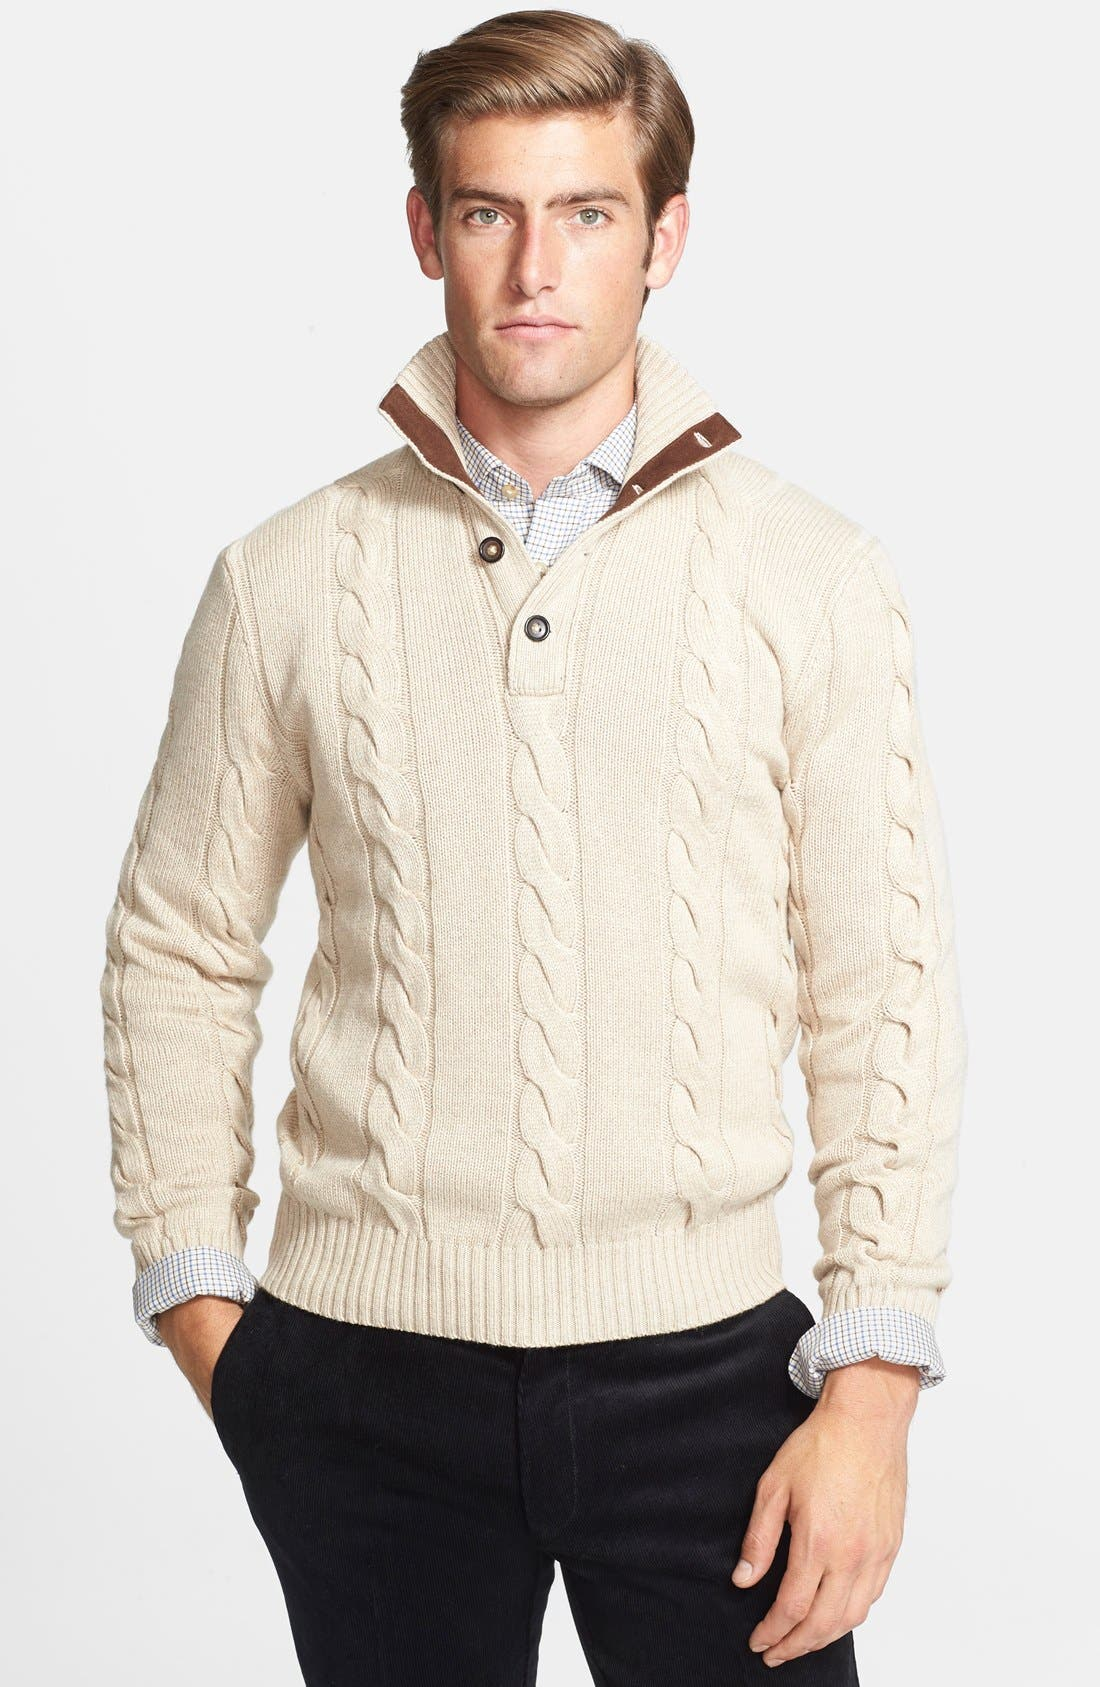 Alternate Image 1 Selected - Polo Ralph Lauren Silk & Cashmere Cable Knit Sweater